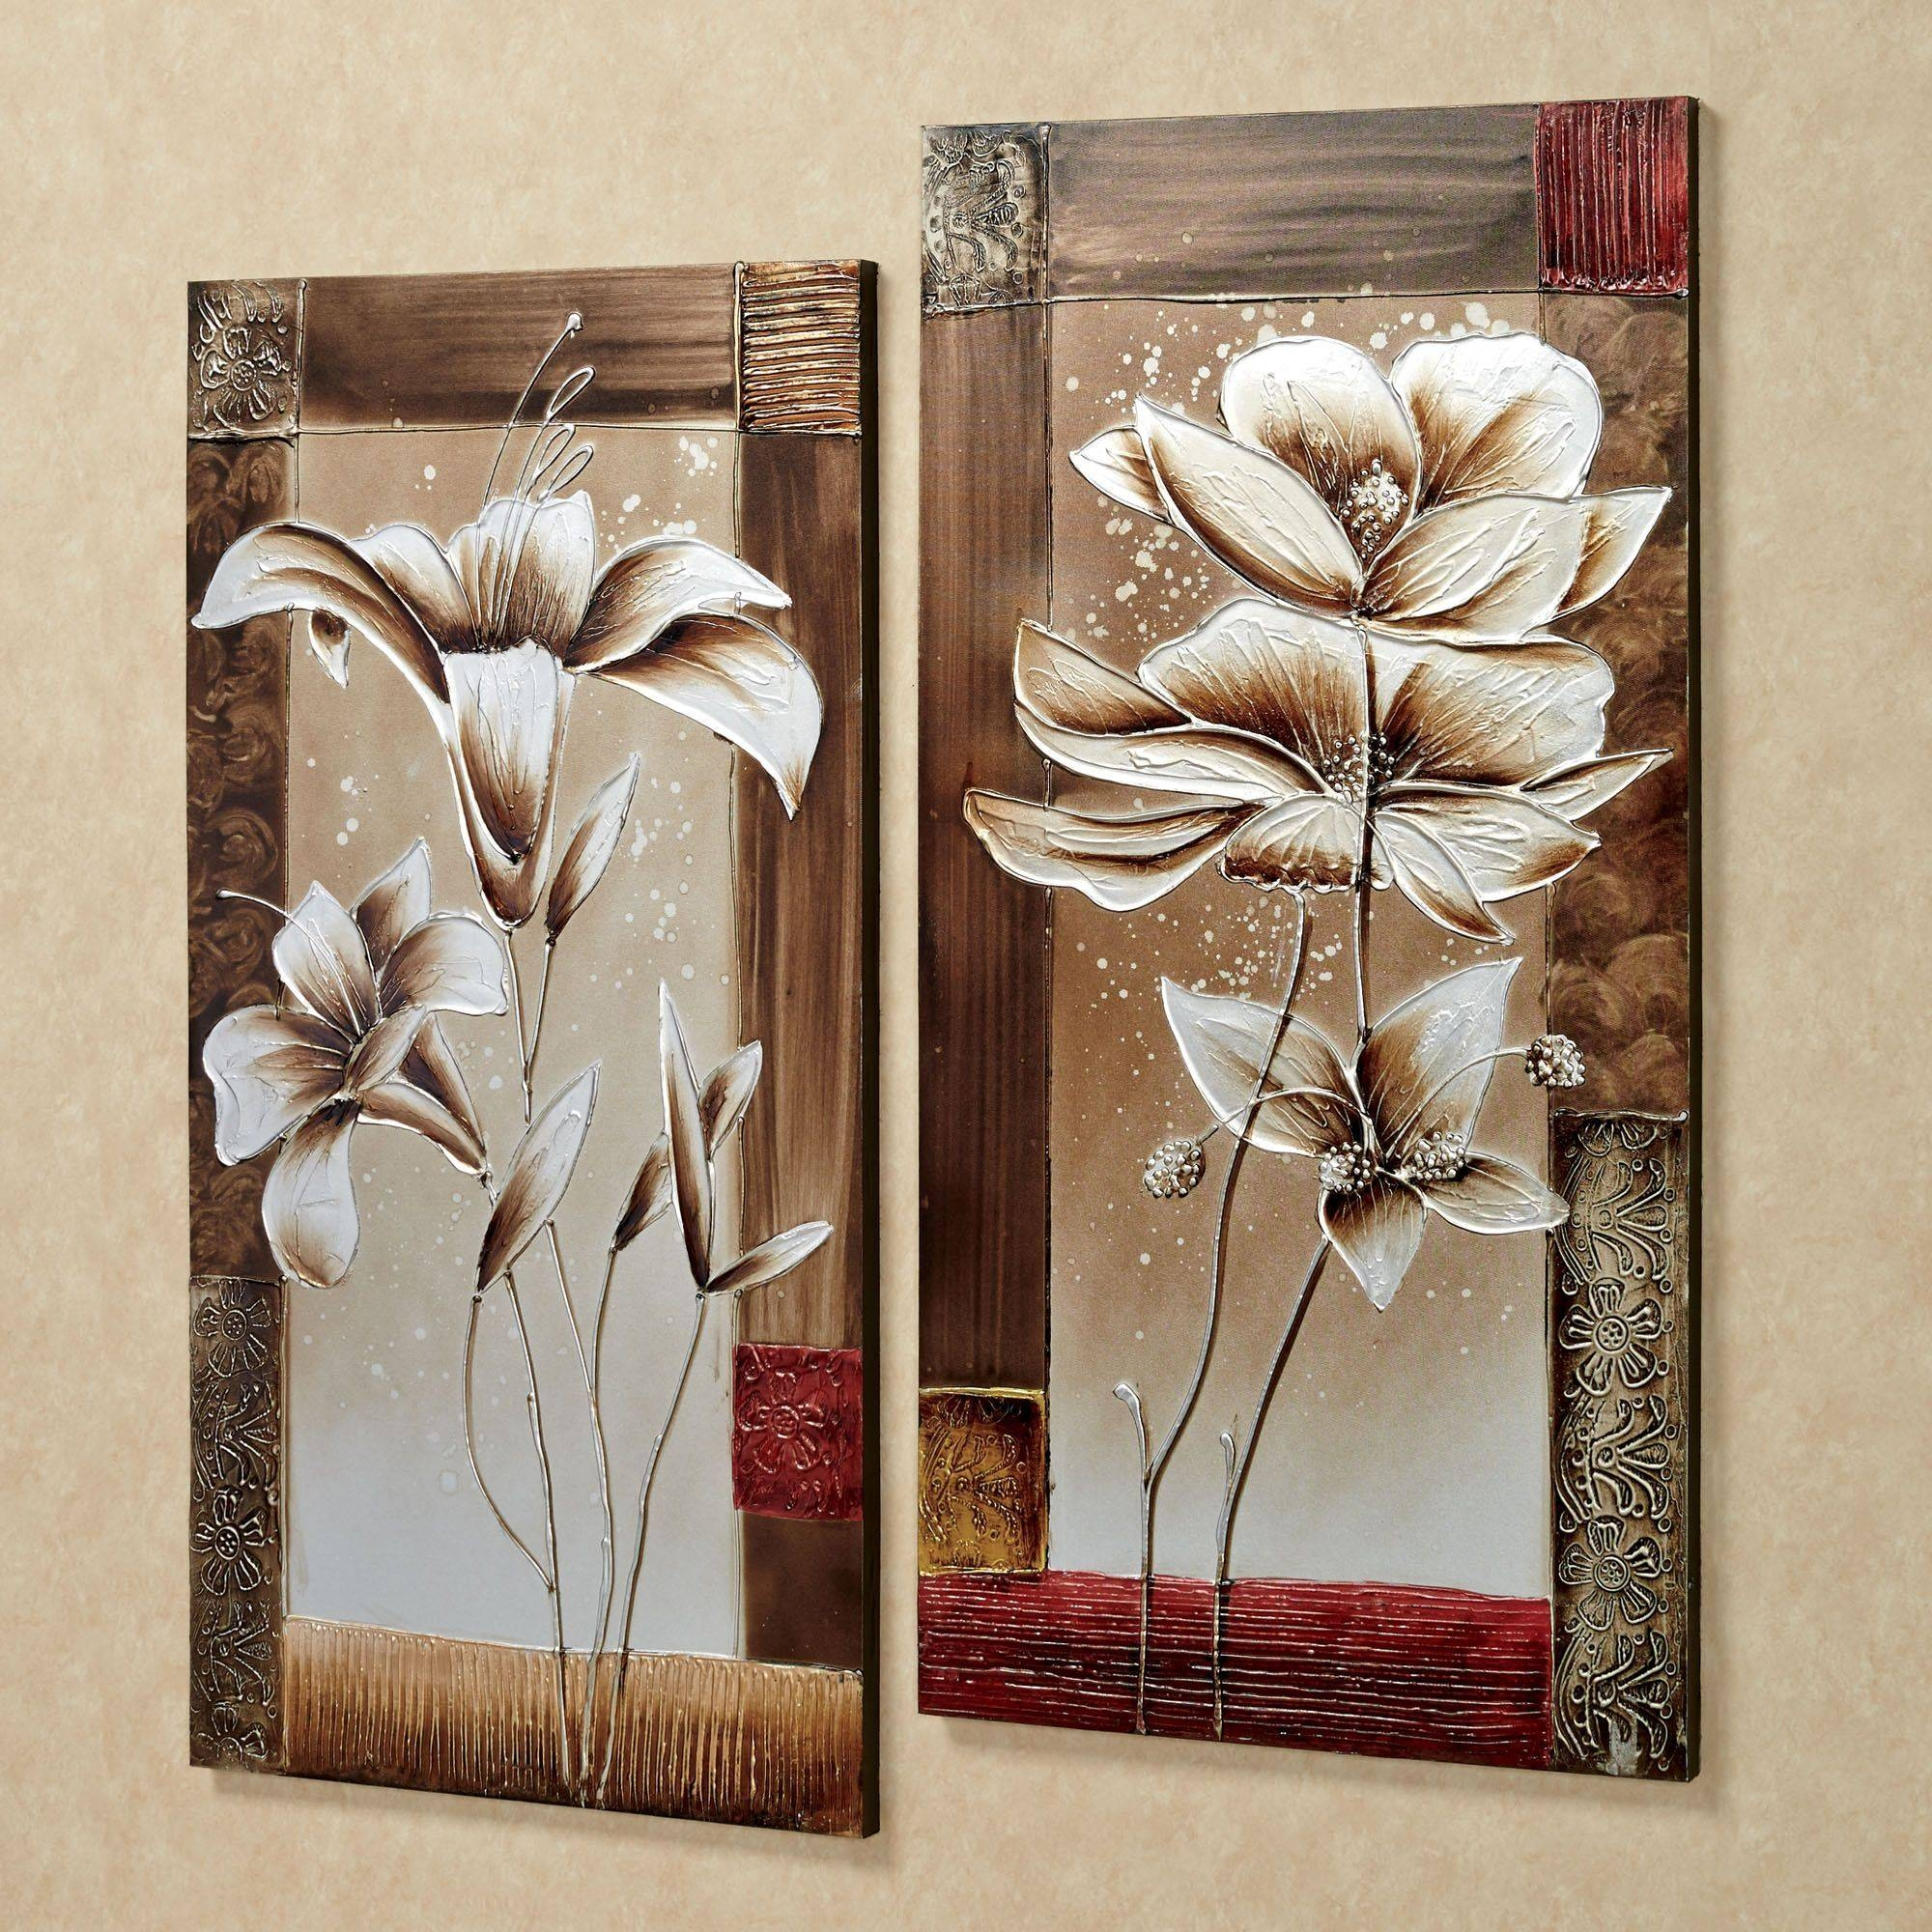 Wall Art Designs: Wall Art Sets Petals Of Spring Canvas Wall Art With Regard To Newest Matching Canvas Wall Art (View 4 of 20)